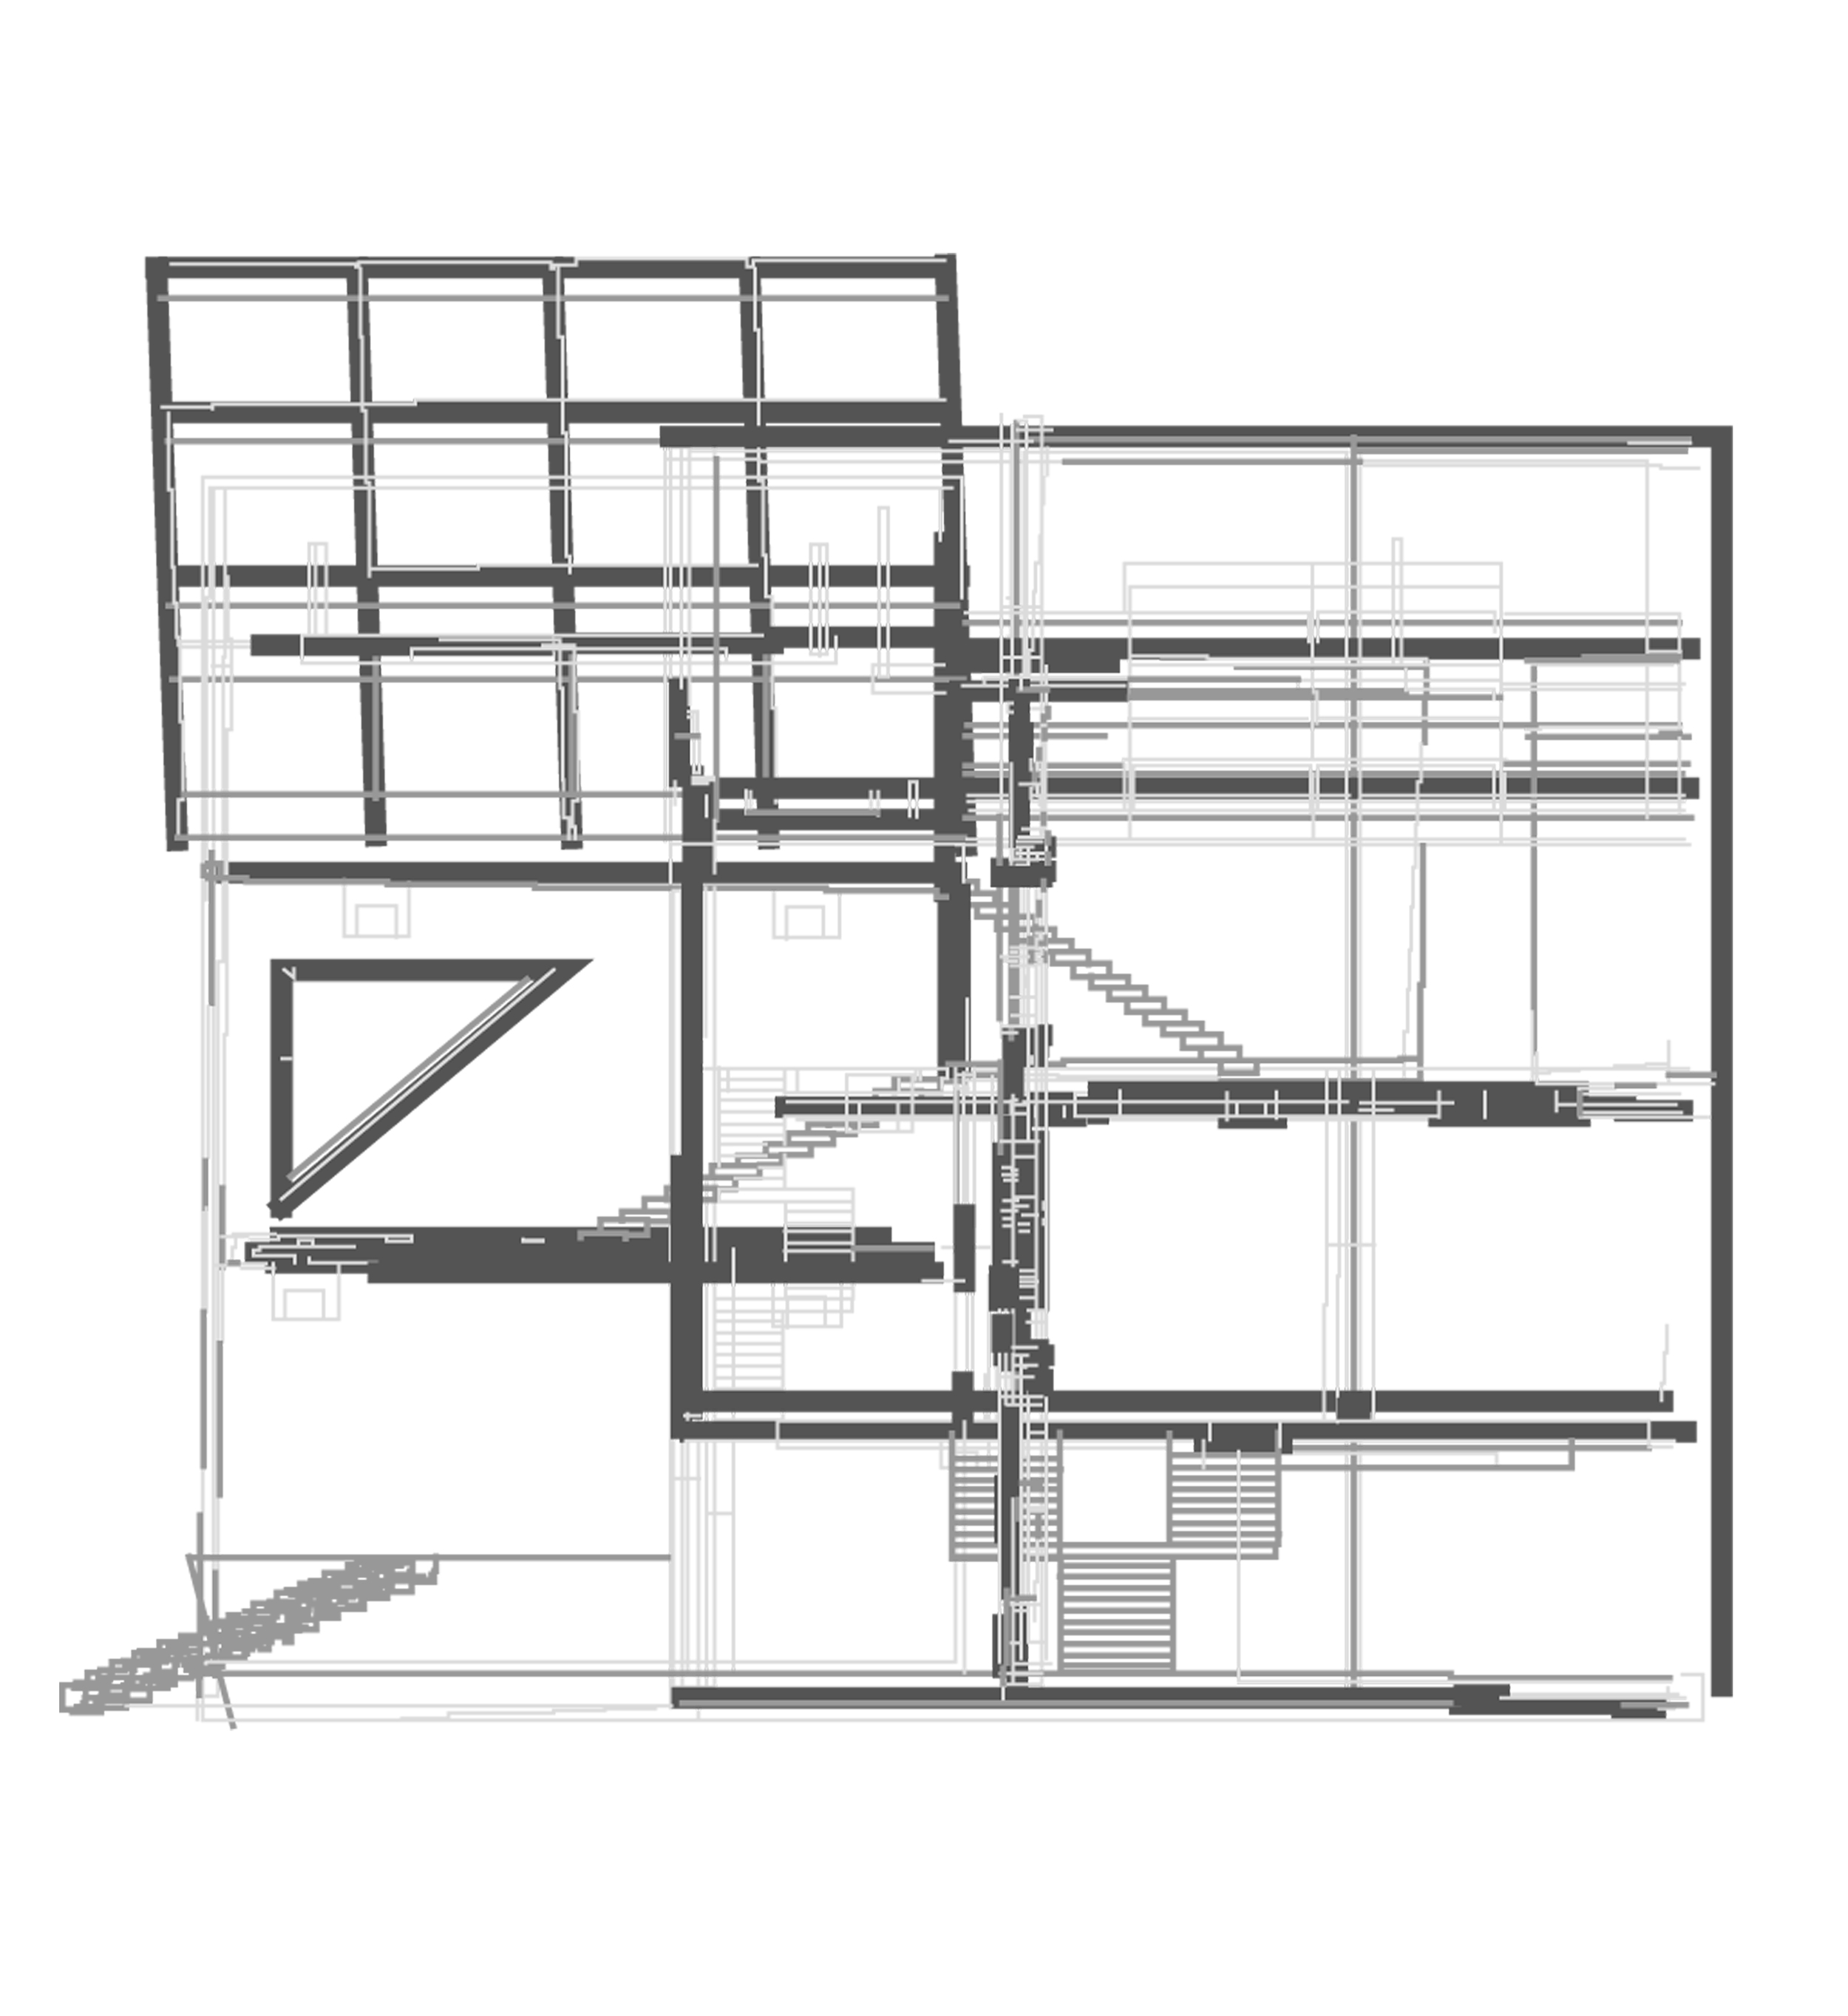 Section drawing